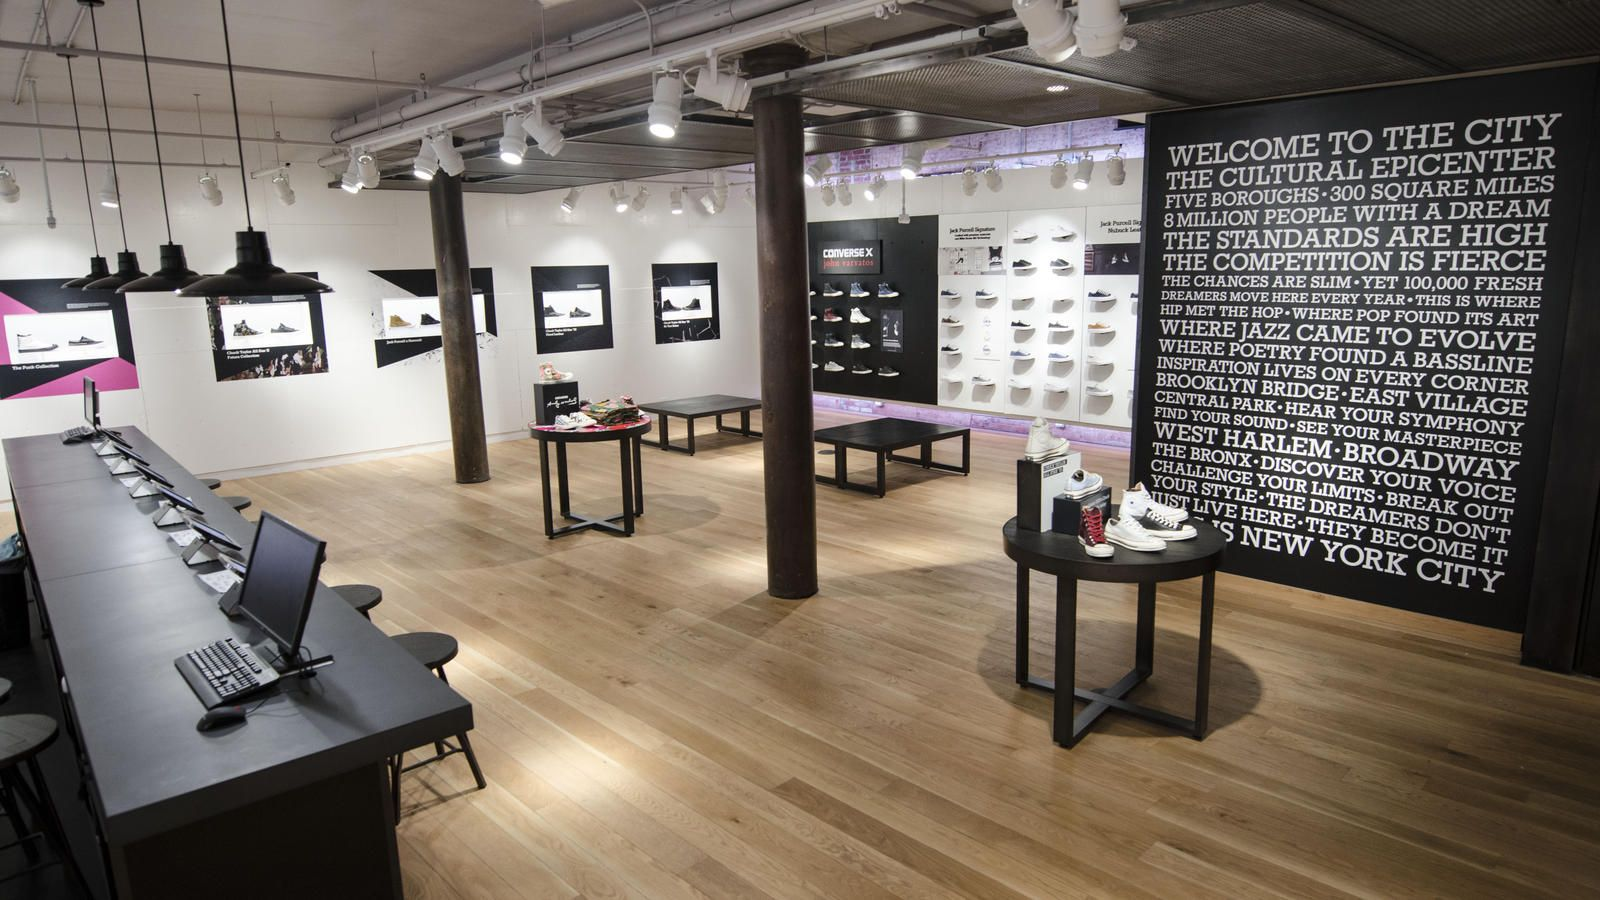 Nike News - CONVERSE REVAMPS SOHO STORE CREATING LARGEST CONVERSE SHOP IN  THE WORLD